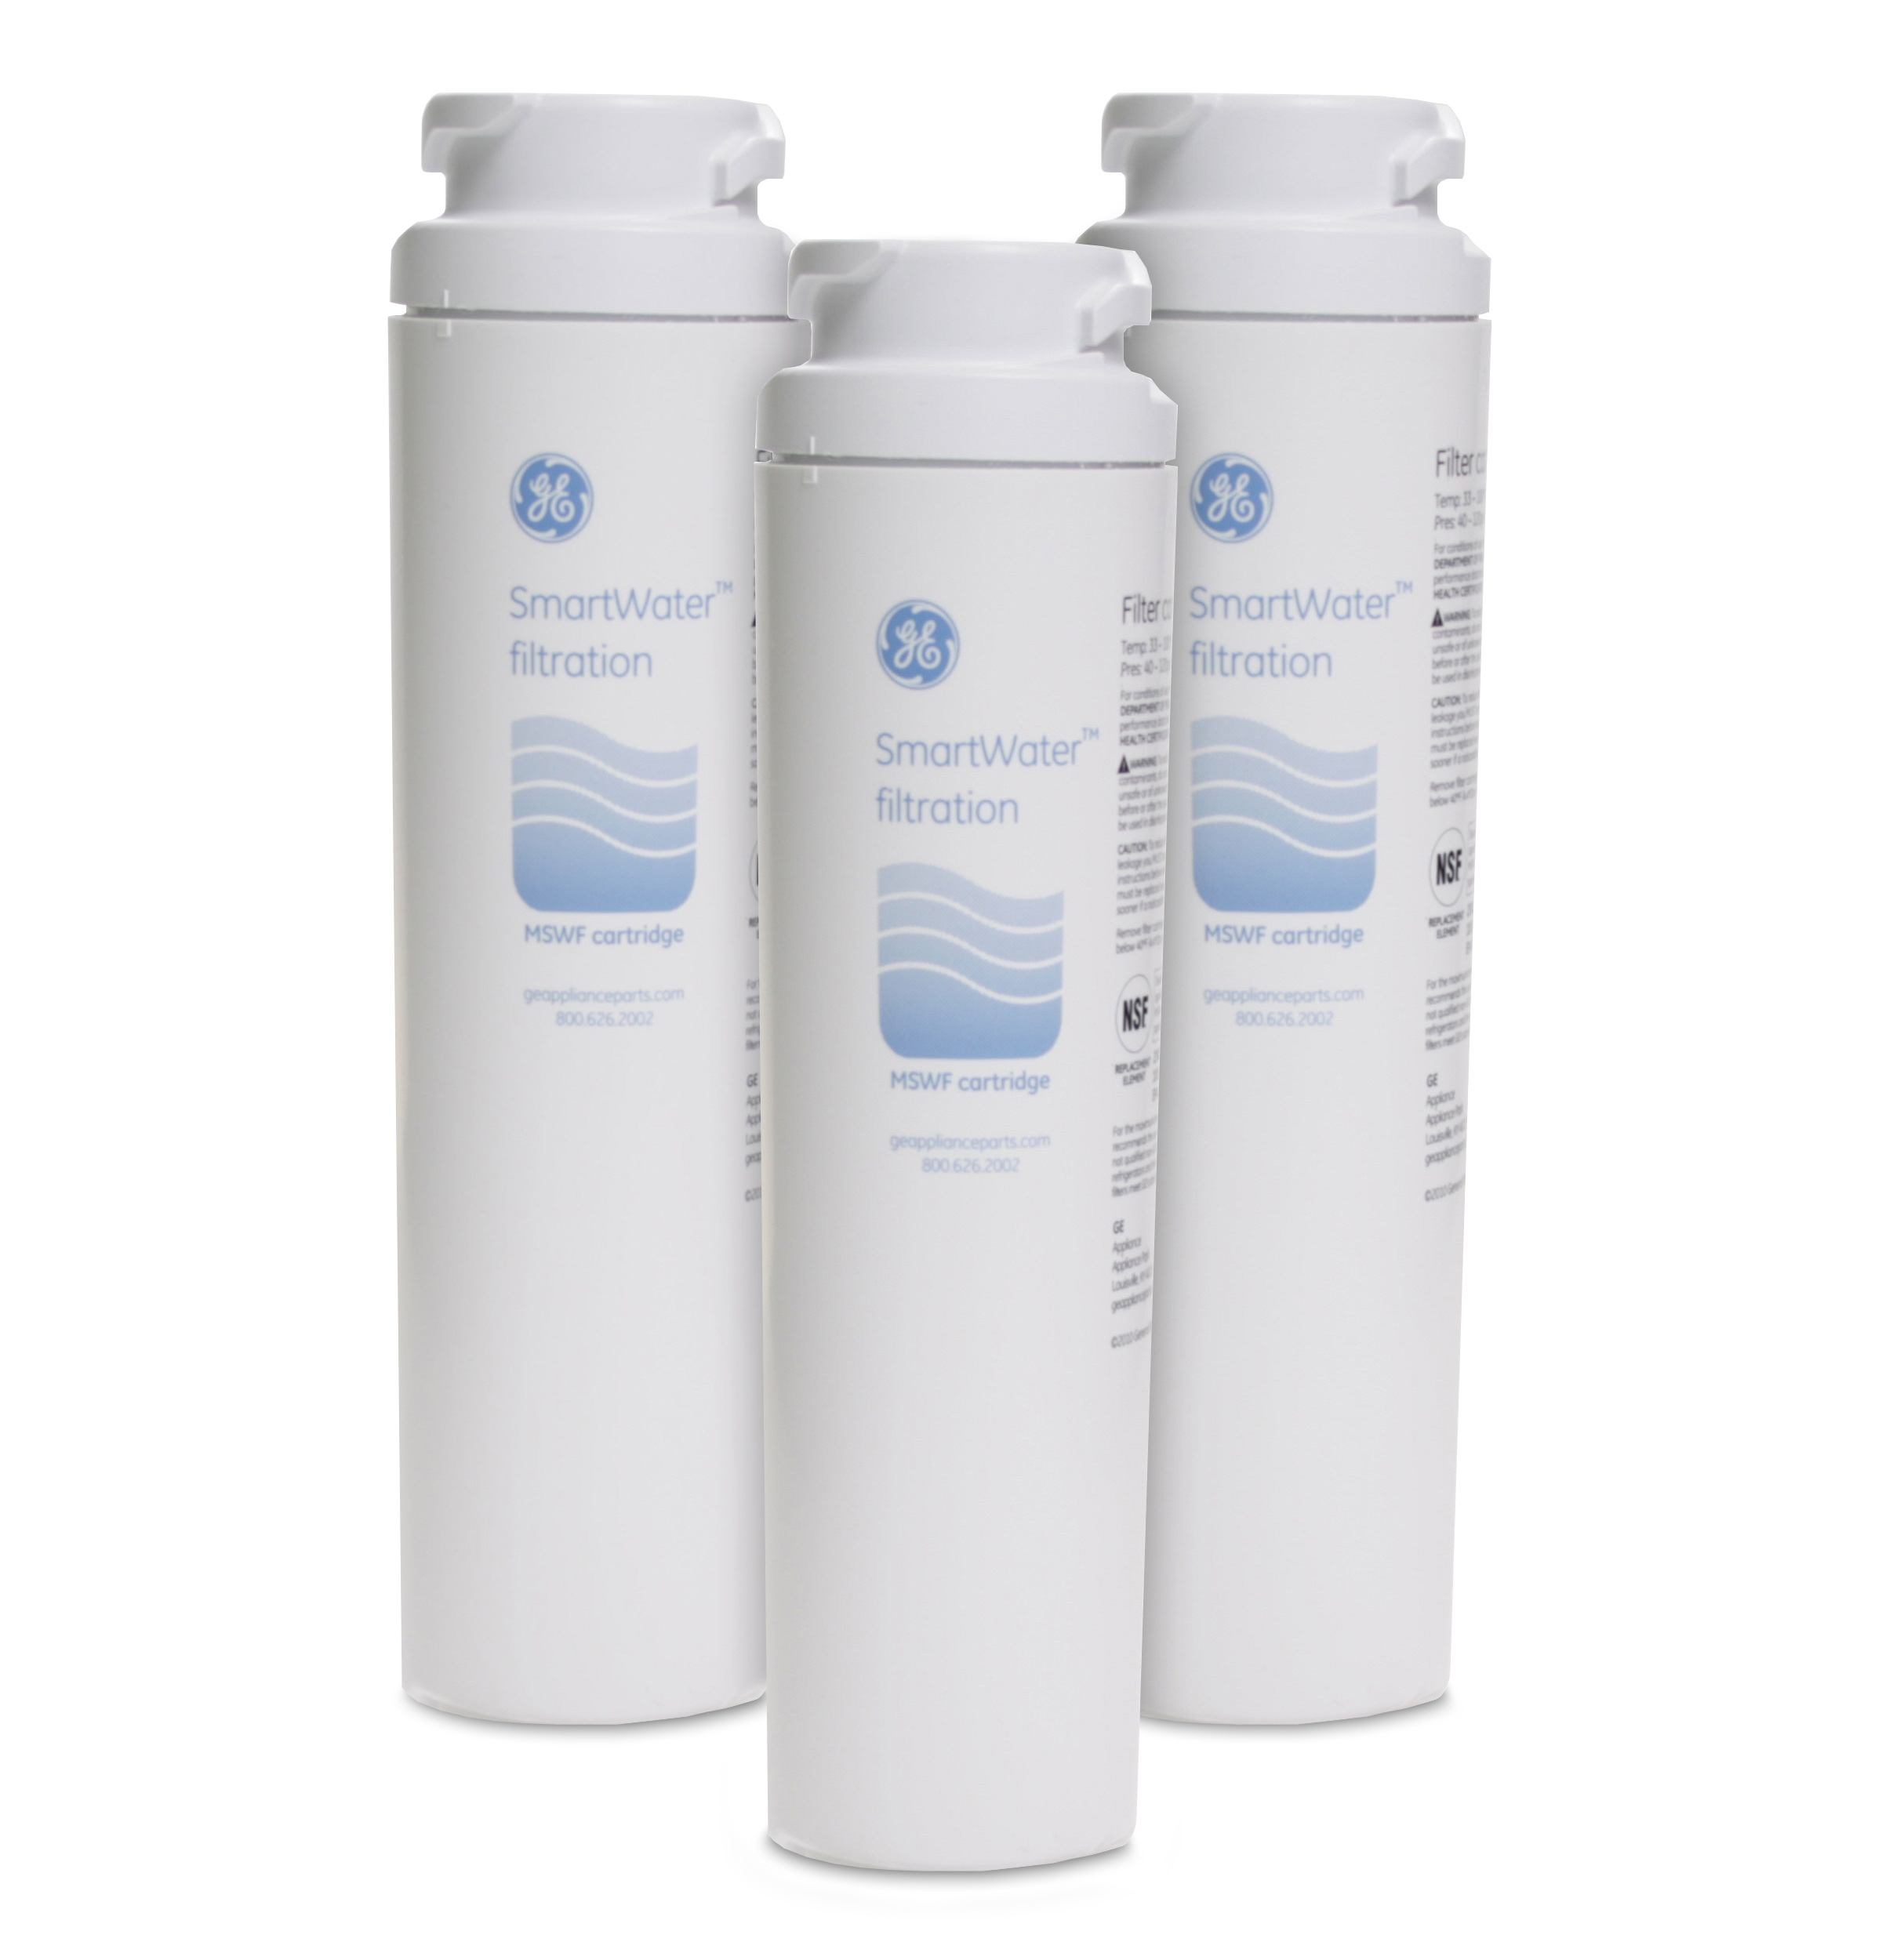 Ge Refrigerator Filter Replacement Cartridge Mswf3pk Gear Mswf3pk Refrigerator Water Filter 3 Pack Ge Parts